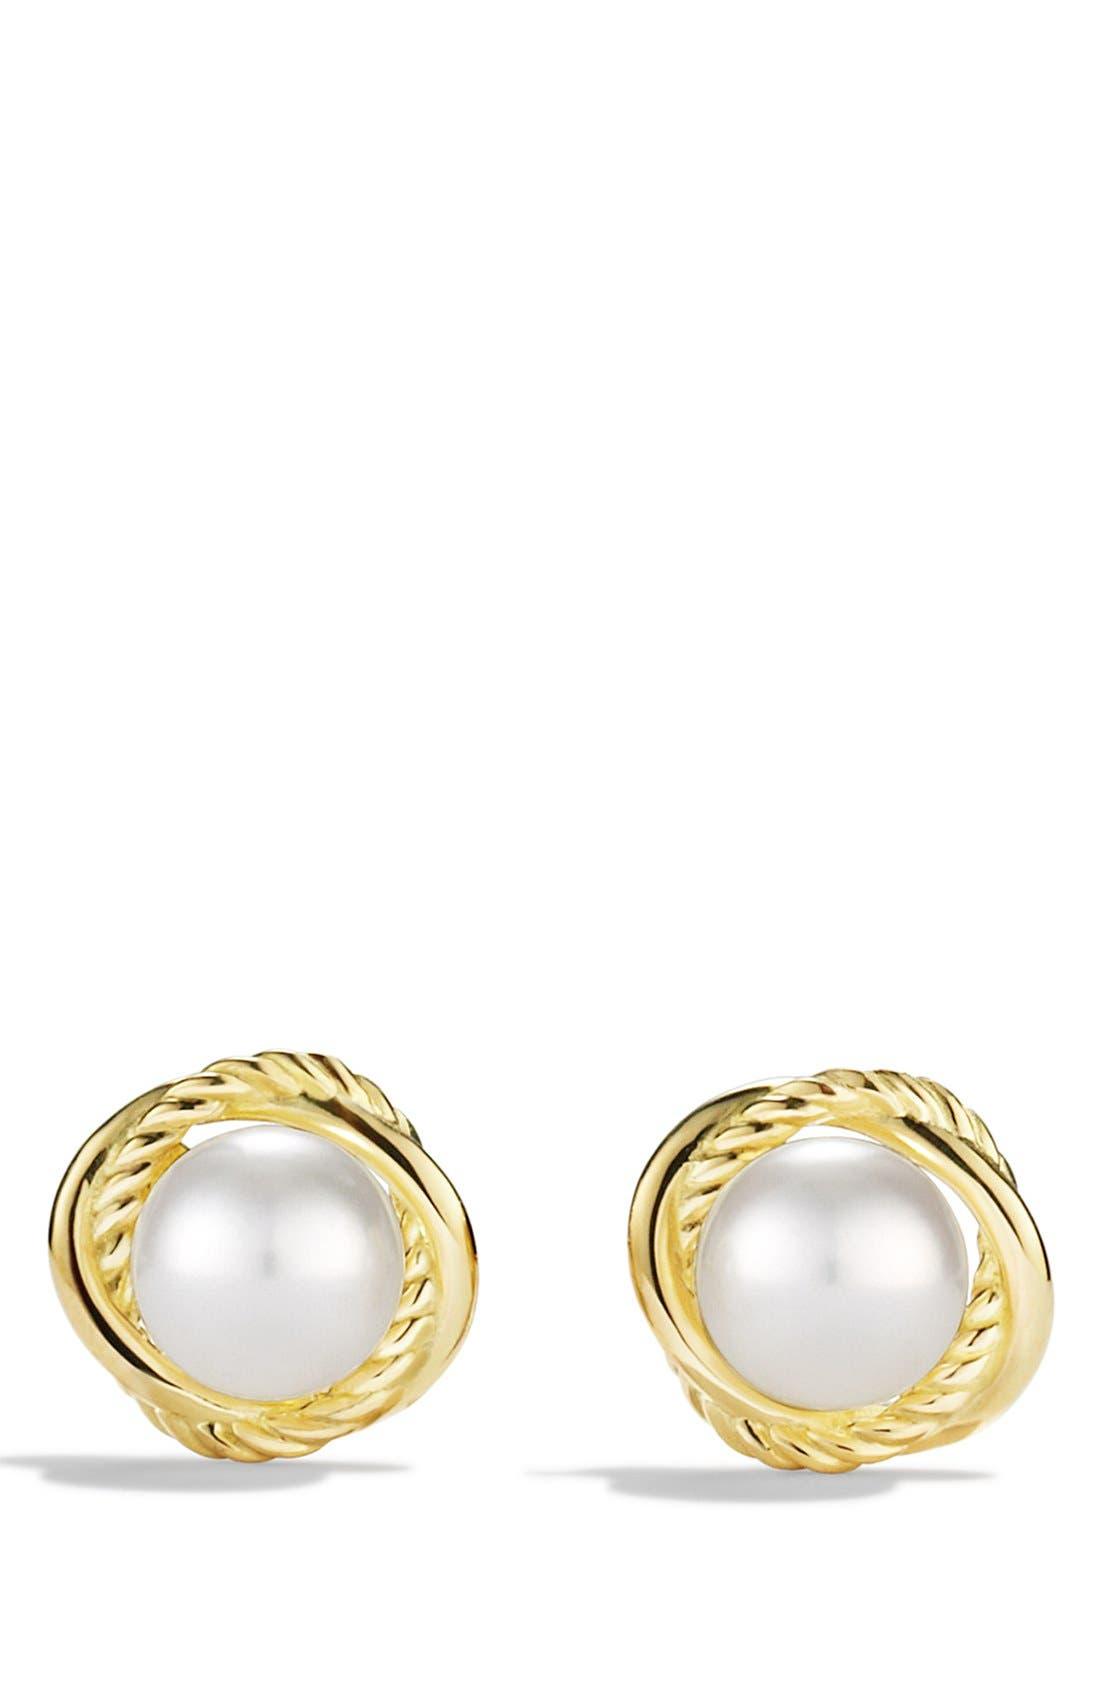 'Infinity' Earrings with Pearls in Gold,                             Alternate thumbnail 2, color,                             Pearl